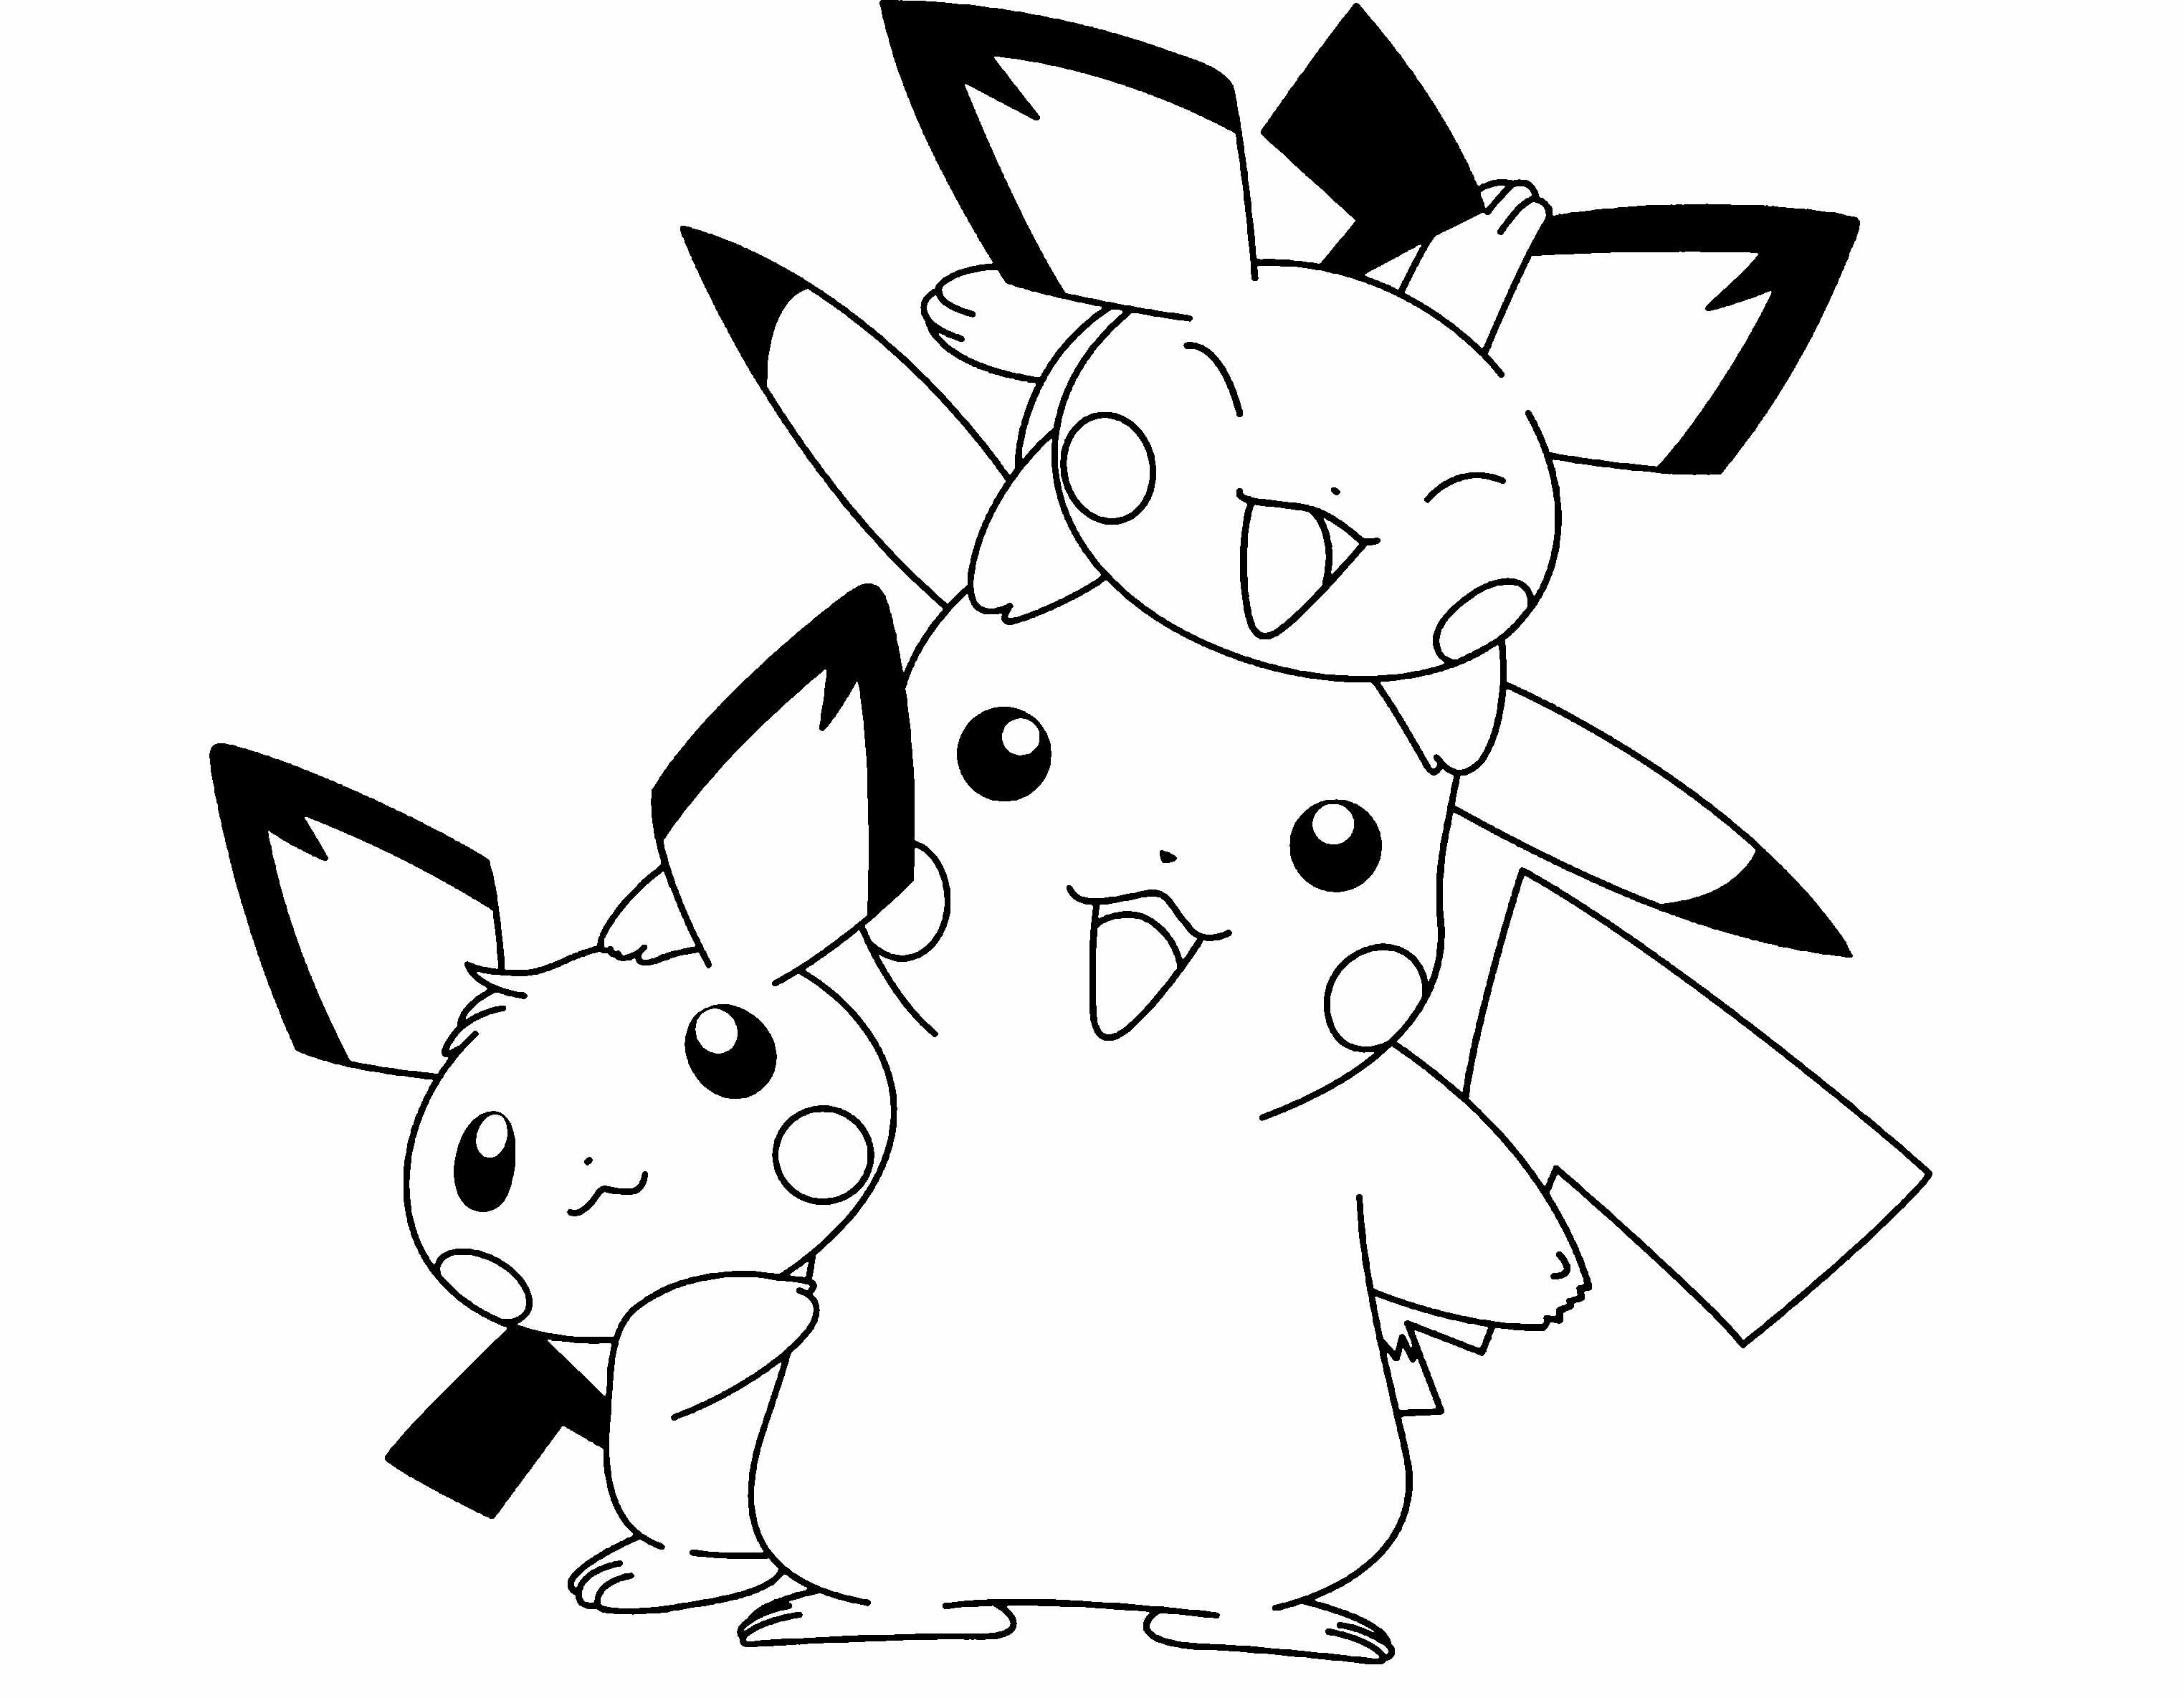 Pokemon Pikachu And Two Friends Are Cute Coloring Page Pikachu Halaman Mewarnai Buku Mewarnai